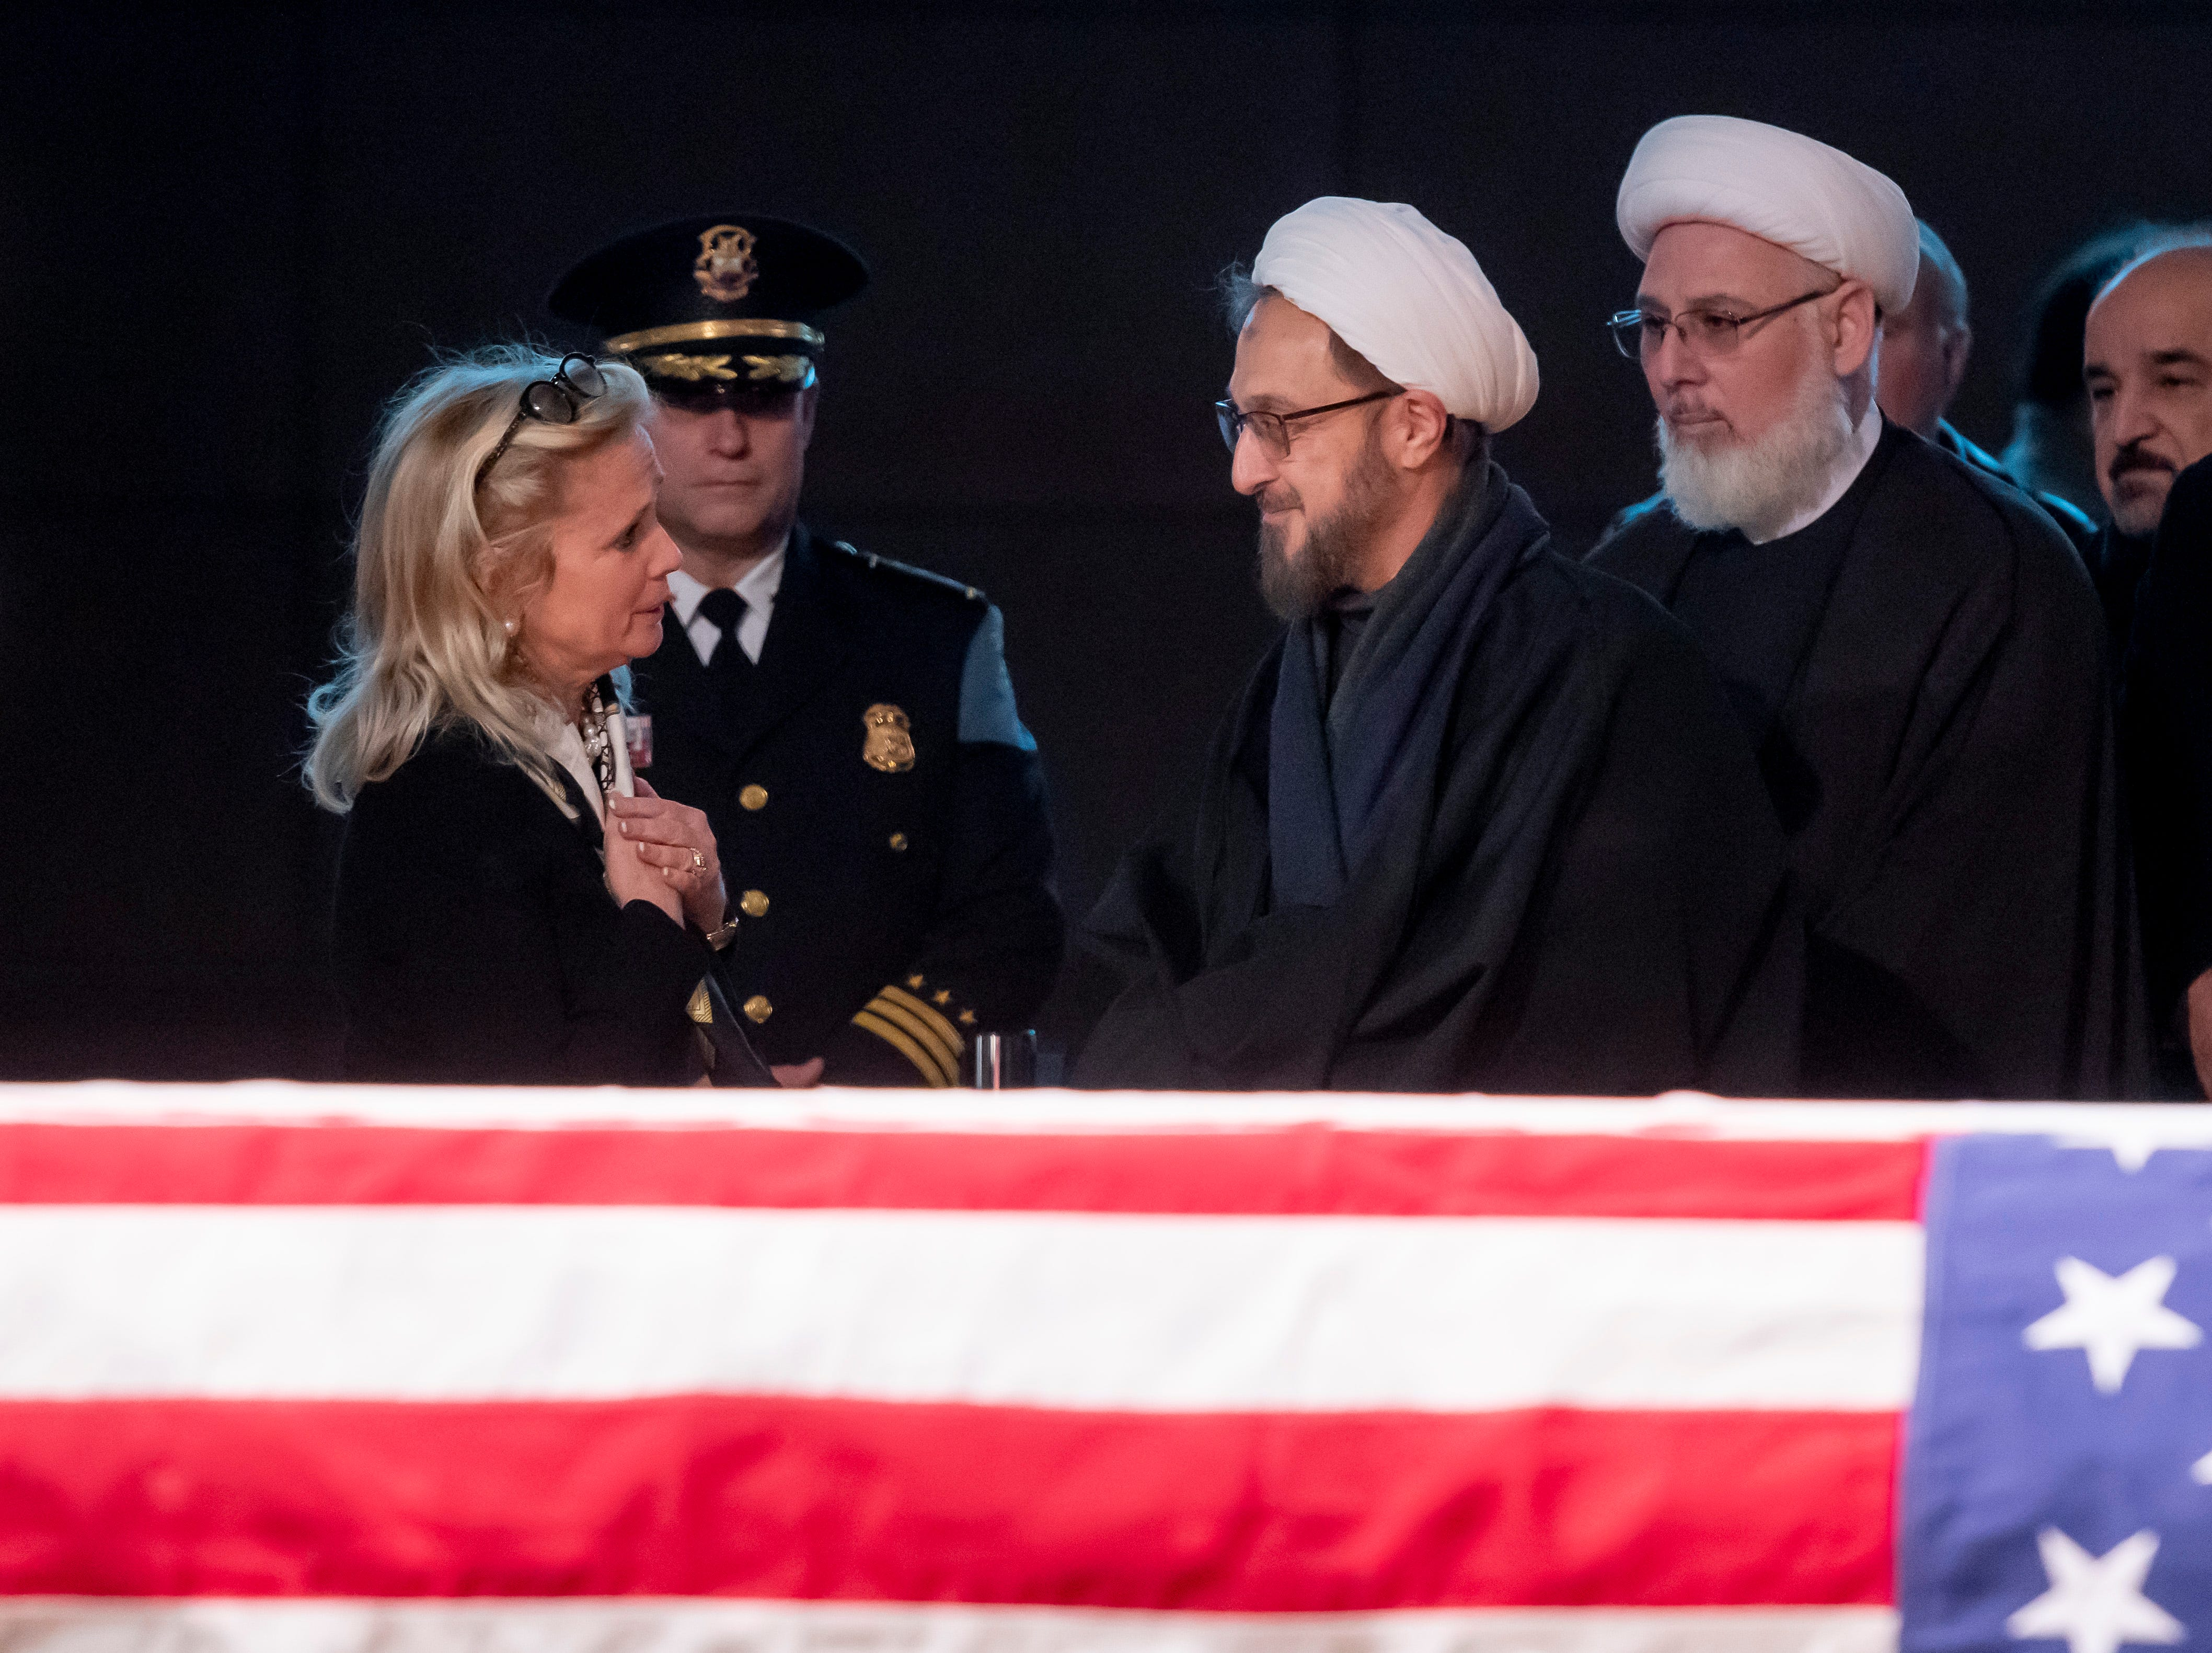 (From left) U.S. Representative Debbie Dingell receives condolences from Imams Ibrahim Kazerooni and Ahmad Hammoud, from the Islamic Center of America, during a visitation for her husband, former U.S. Rep. John Dingell.